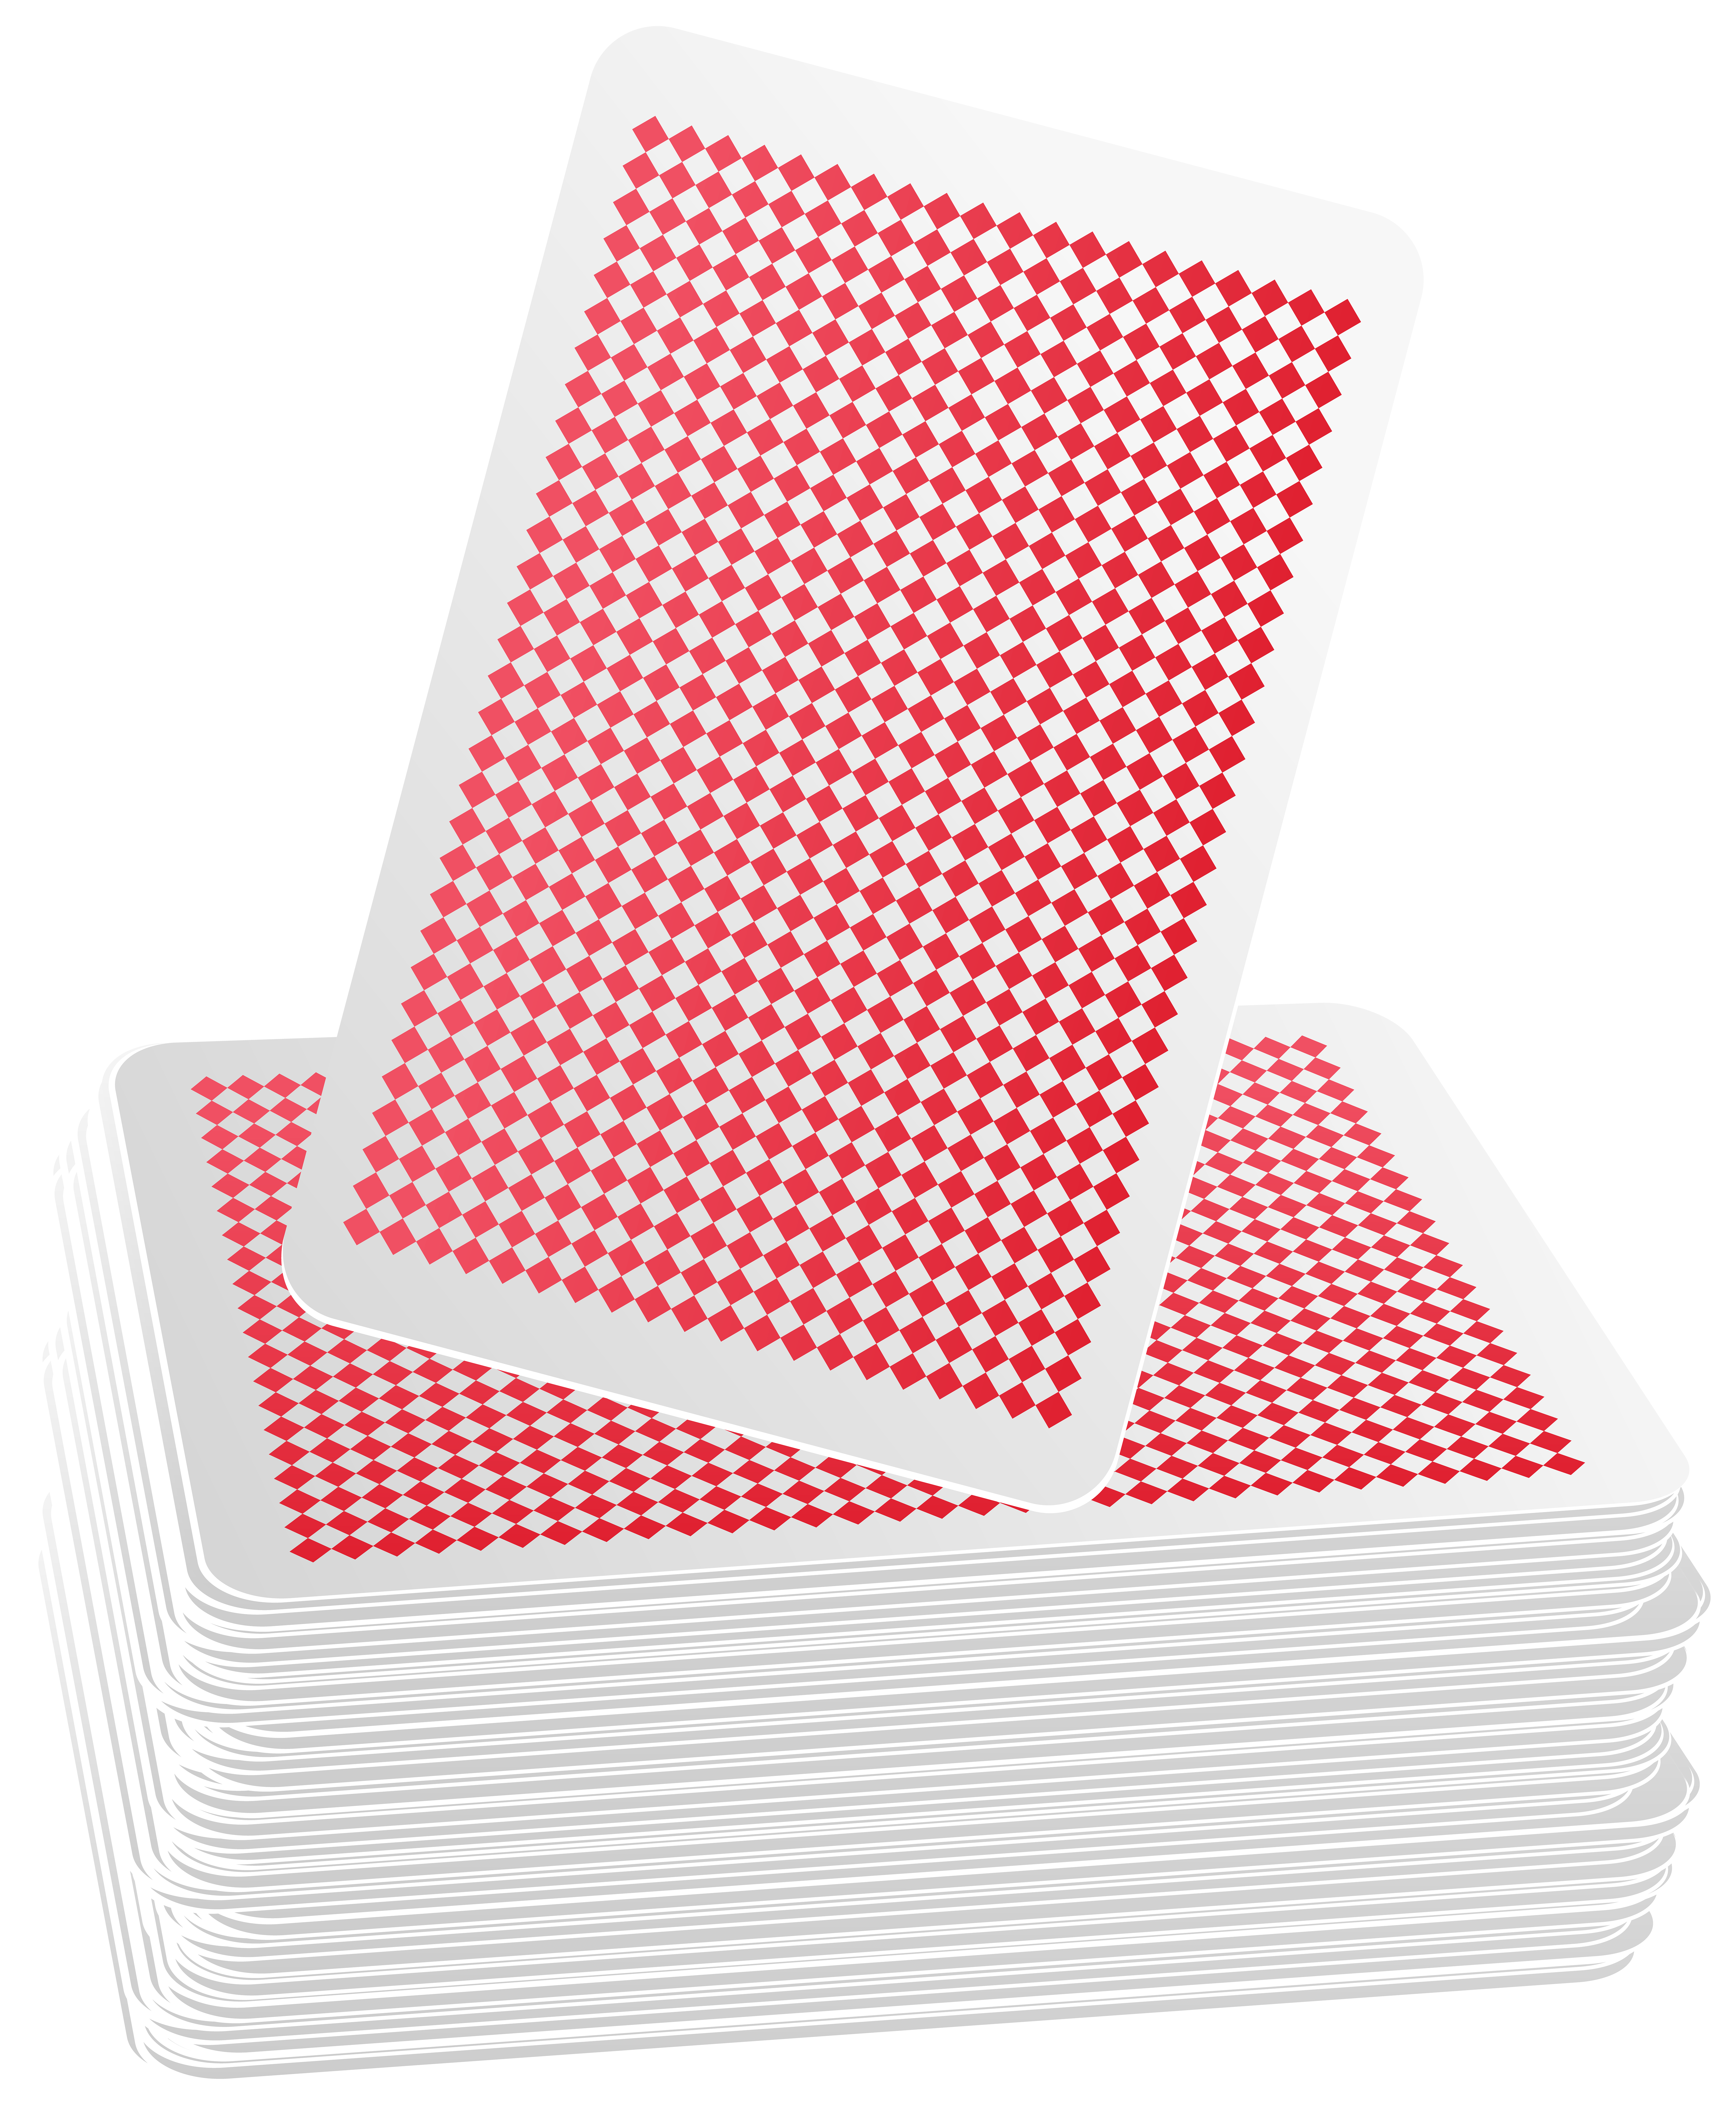 Deck of Cards PNG Clip Art Image.